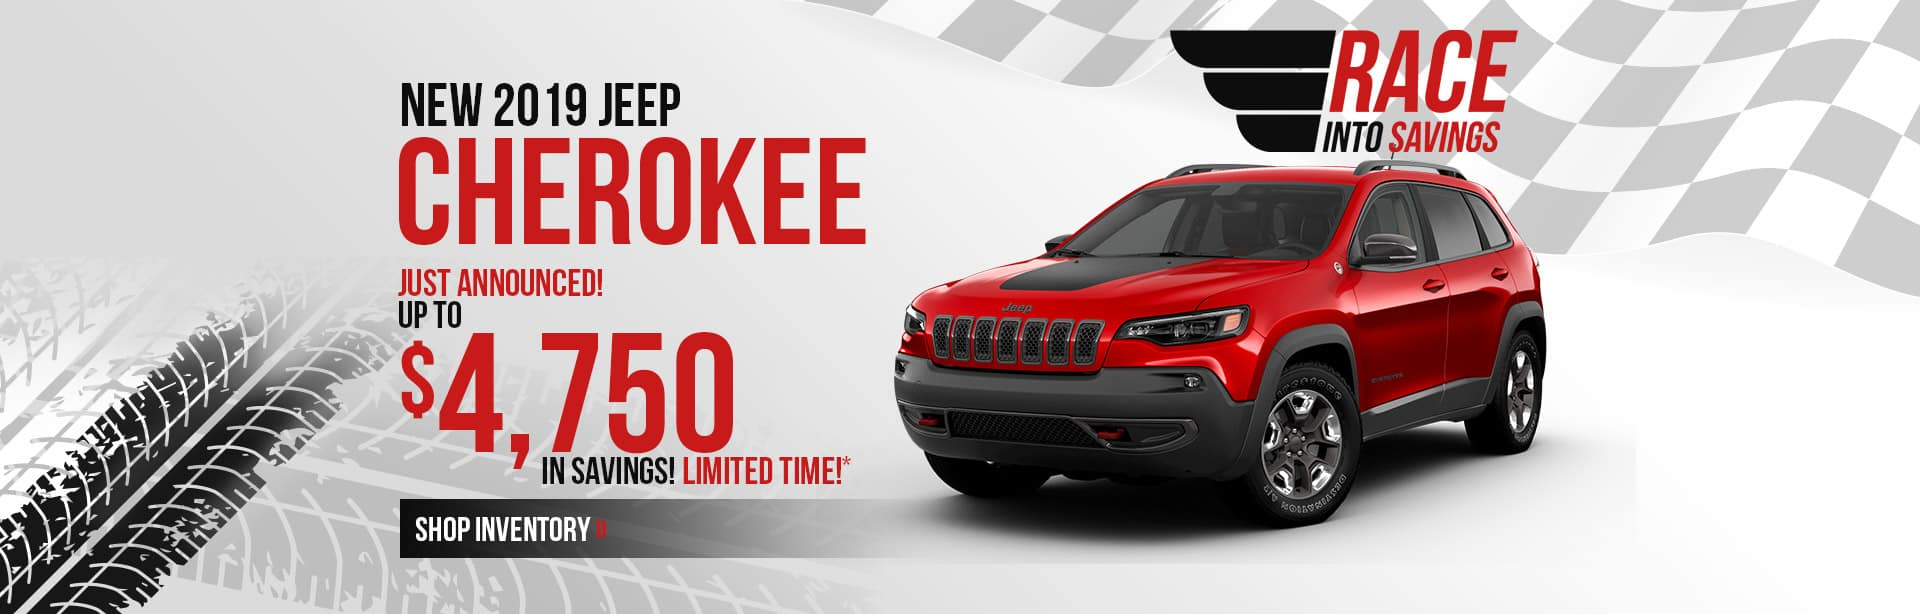 Save more on a New 2019 Jeep Cherokee near Terre Haute, Indiana.